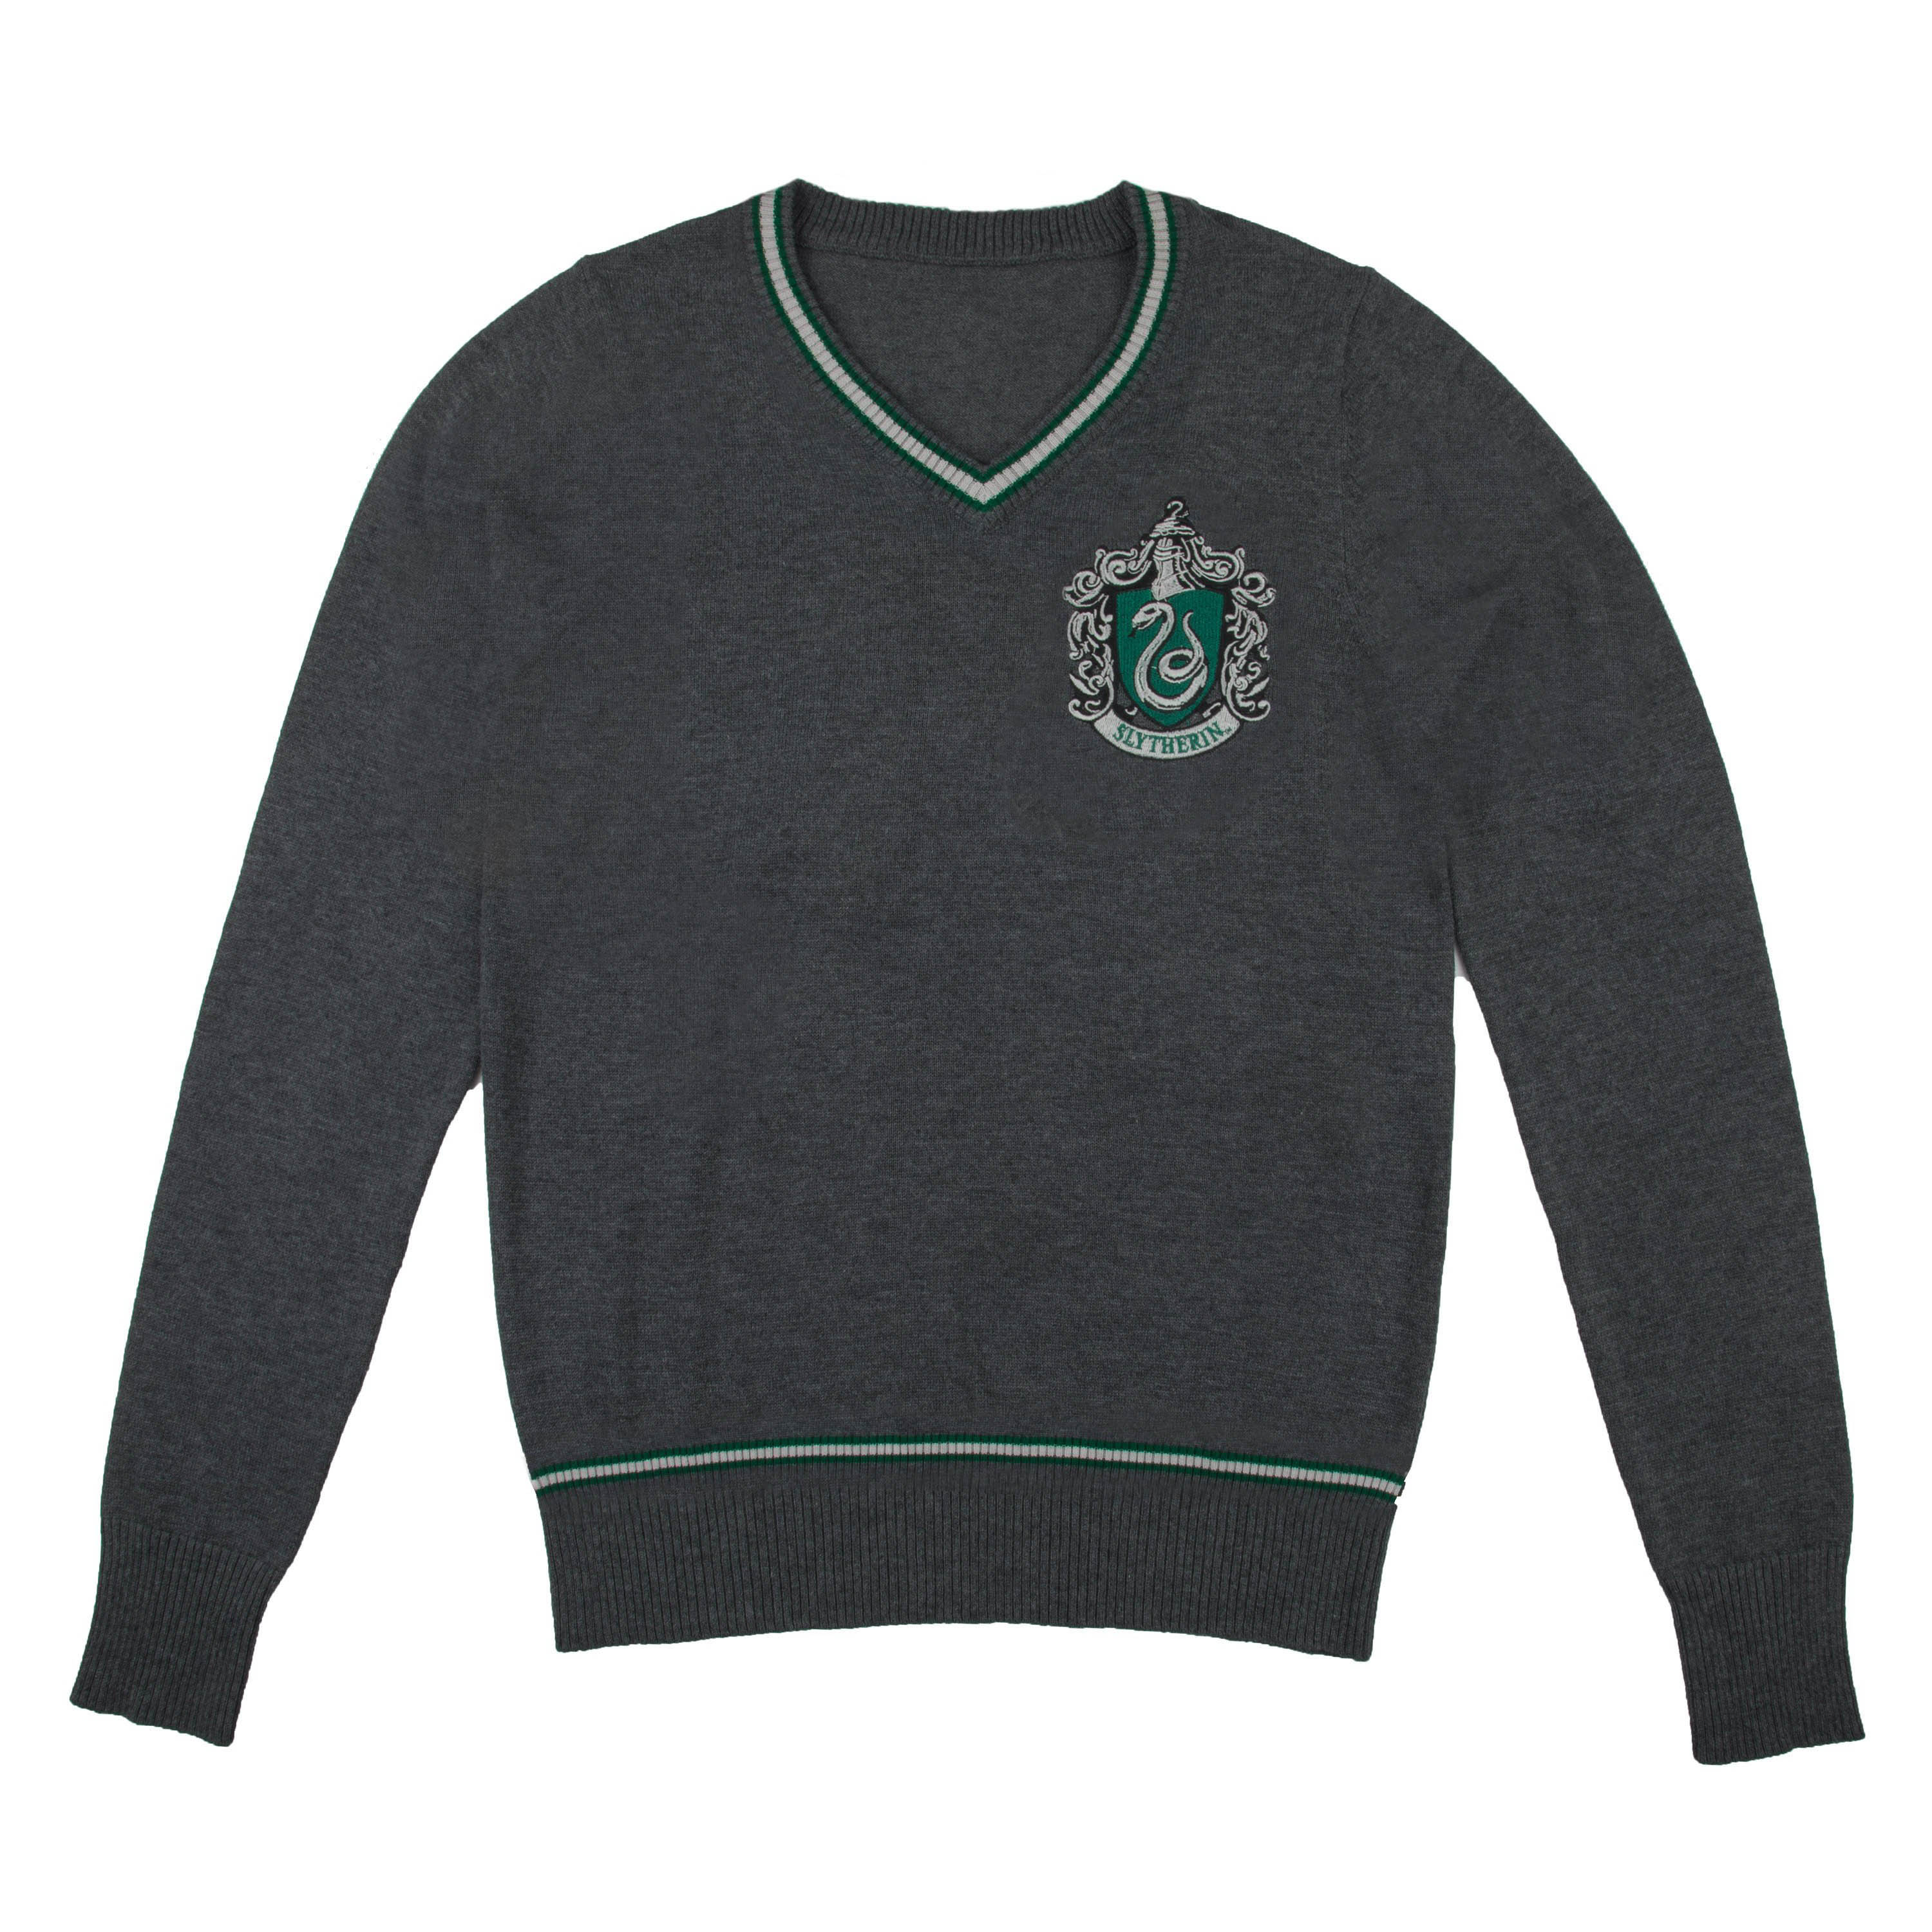 Harry Potter - Slytherin - Grey Knitted Sweater - Small